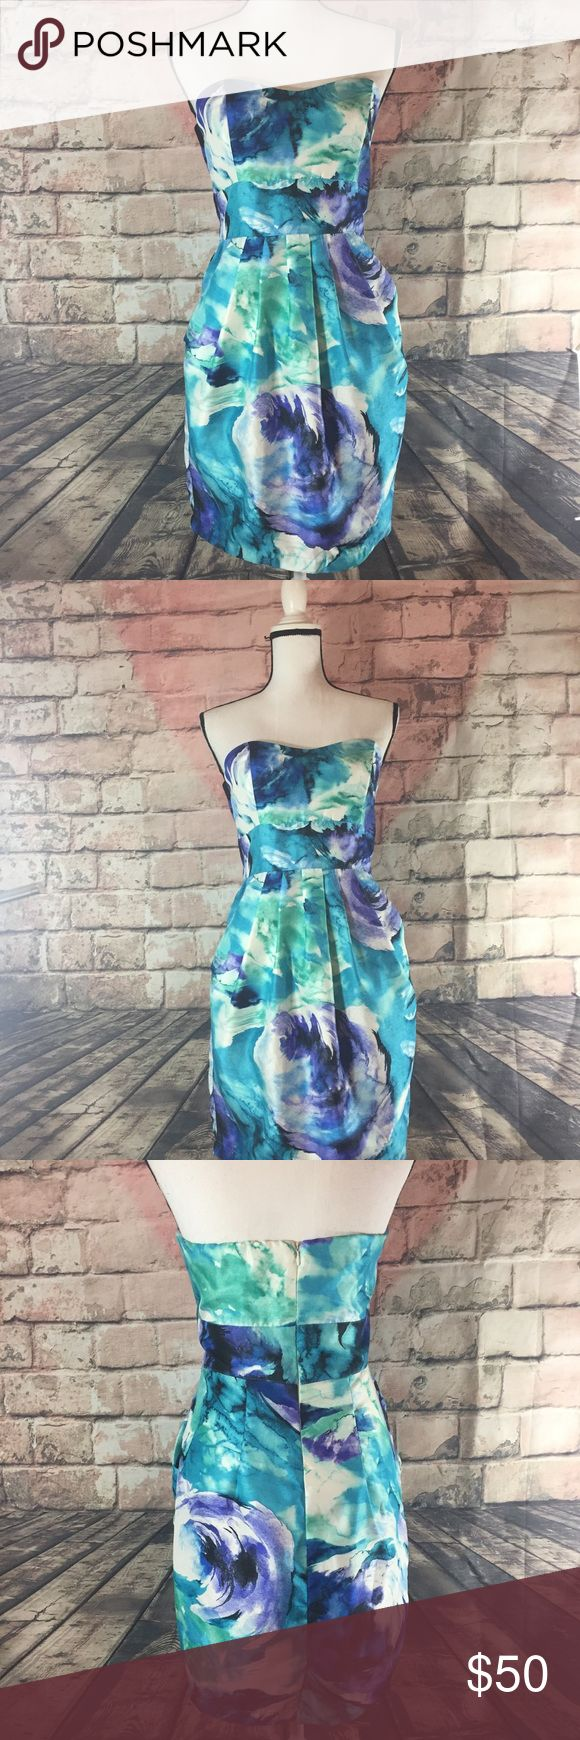 """B. Smart women's strapless dress size 8 This B. Smart strapless dress is a size 8 . It is in great condition only wore once ! The measurements are bust 15"""" and the length is 28"""" from shoulder to the bottom of the dress . B. Smart Dresses"""